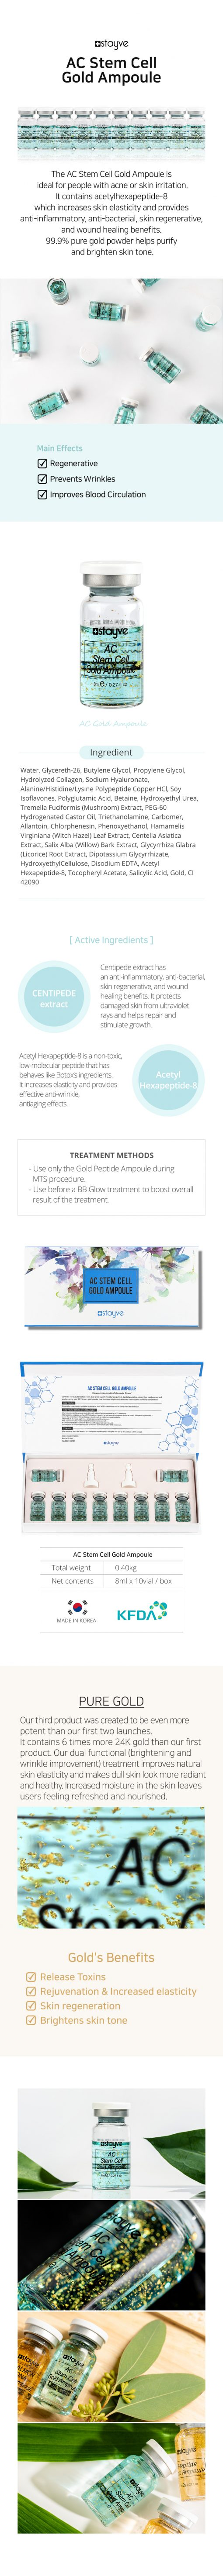 Stayve AC Stem Cell Ampoule Information & Ingredients